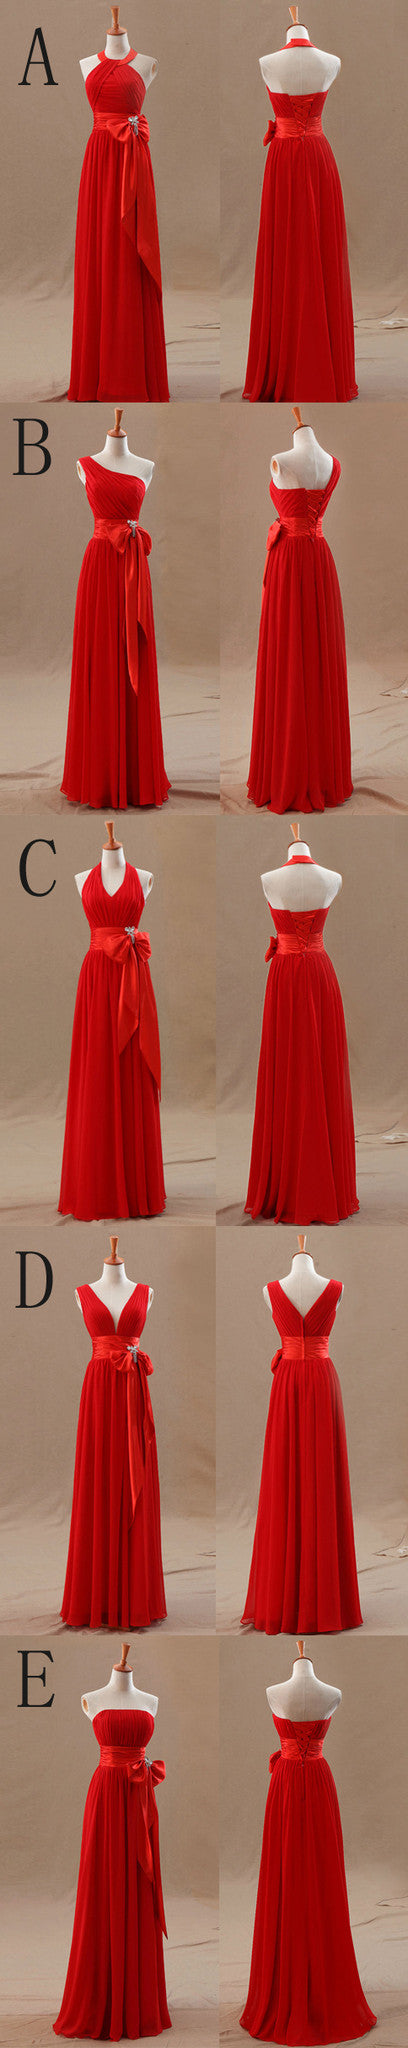 A Line Mismatched Junior Red Long Bridesmaid Dresses with Bow, BG51283